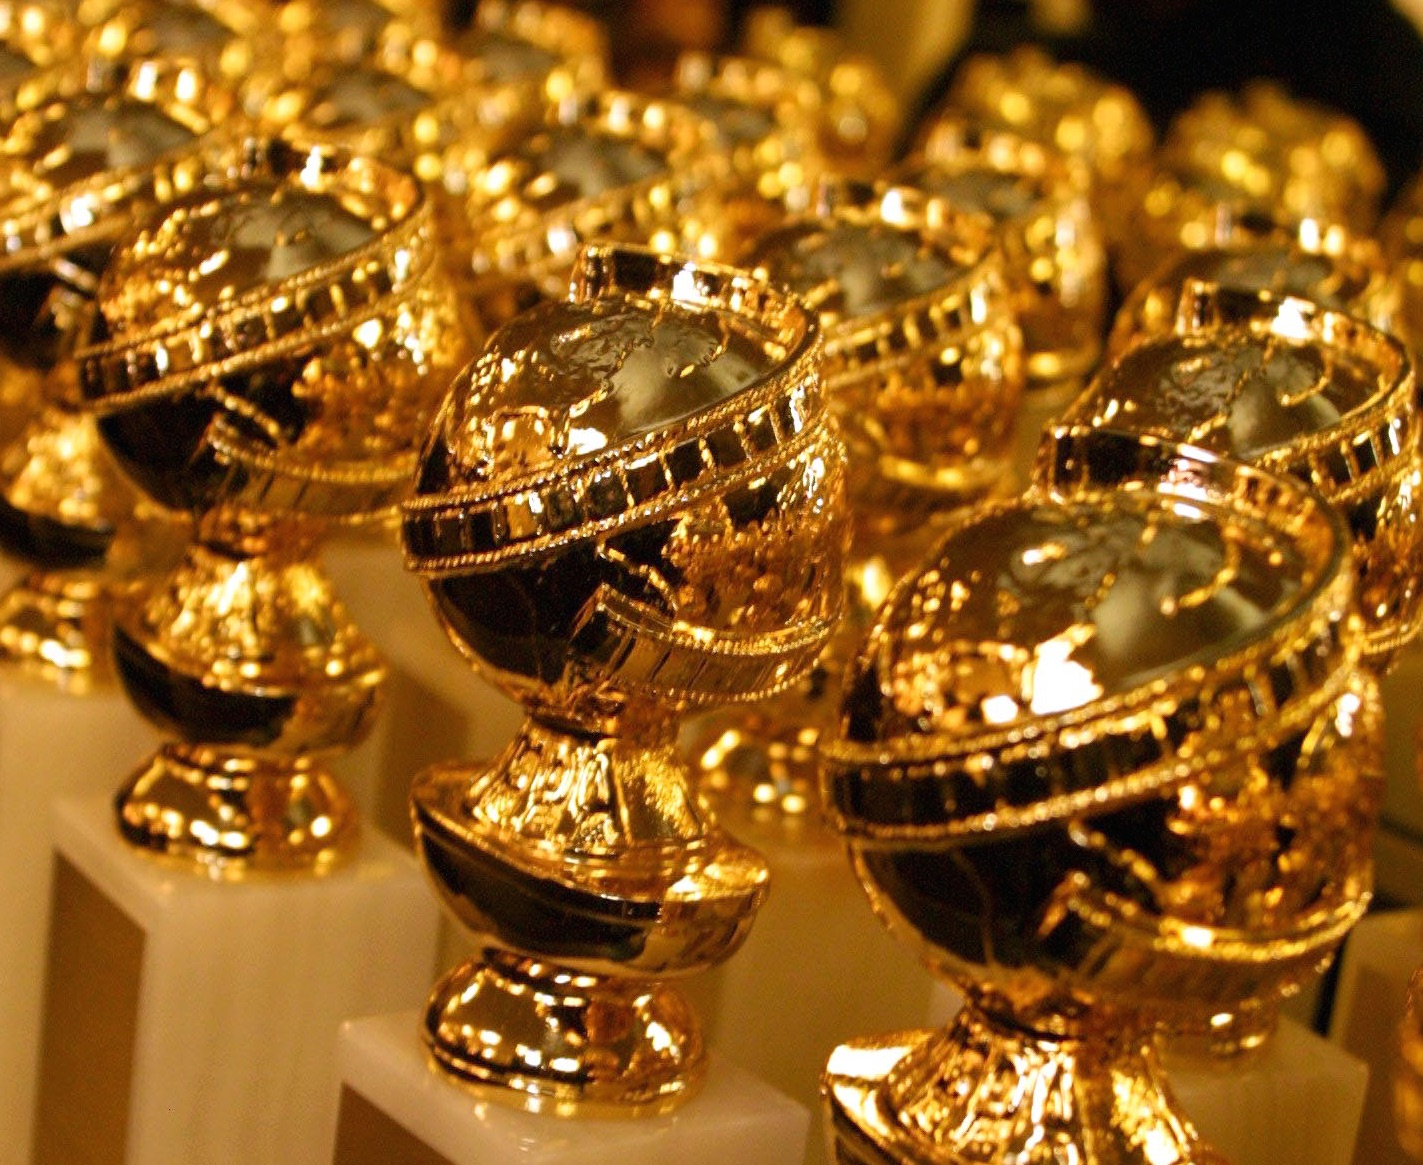 Golden Globes 2020 Nominations: Live Stream the Announcement Online